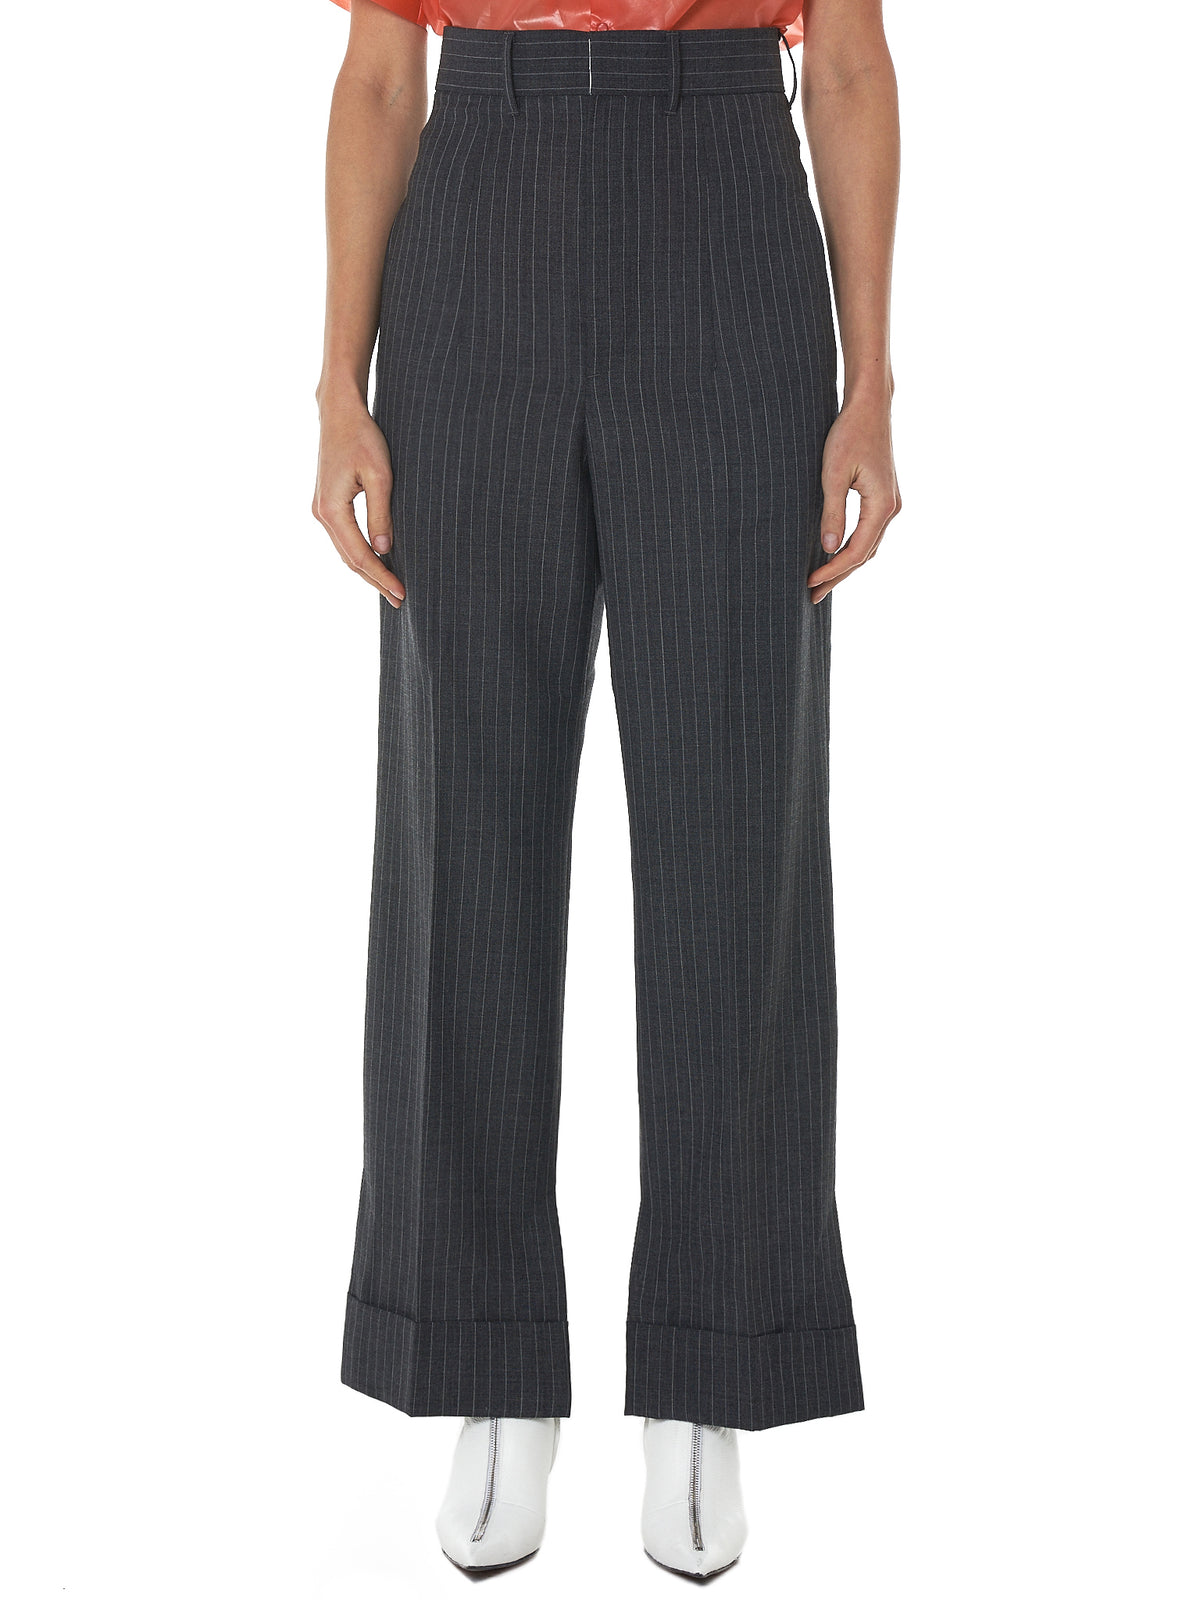 Toga Archives Pinstriped Pant - Hlorenzo Front